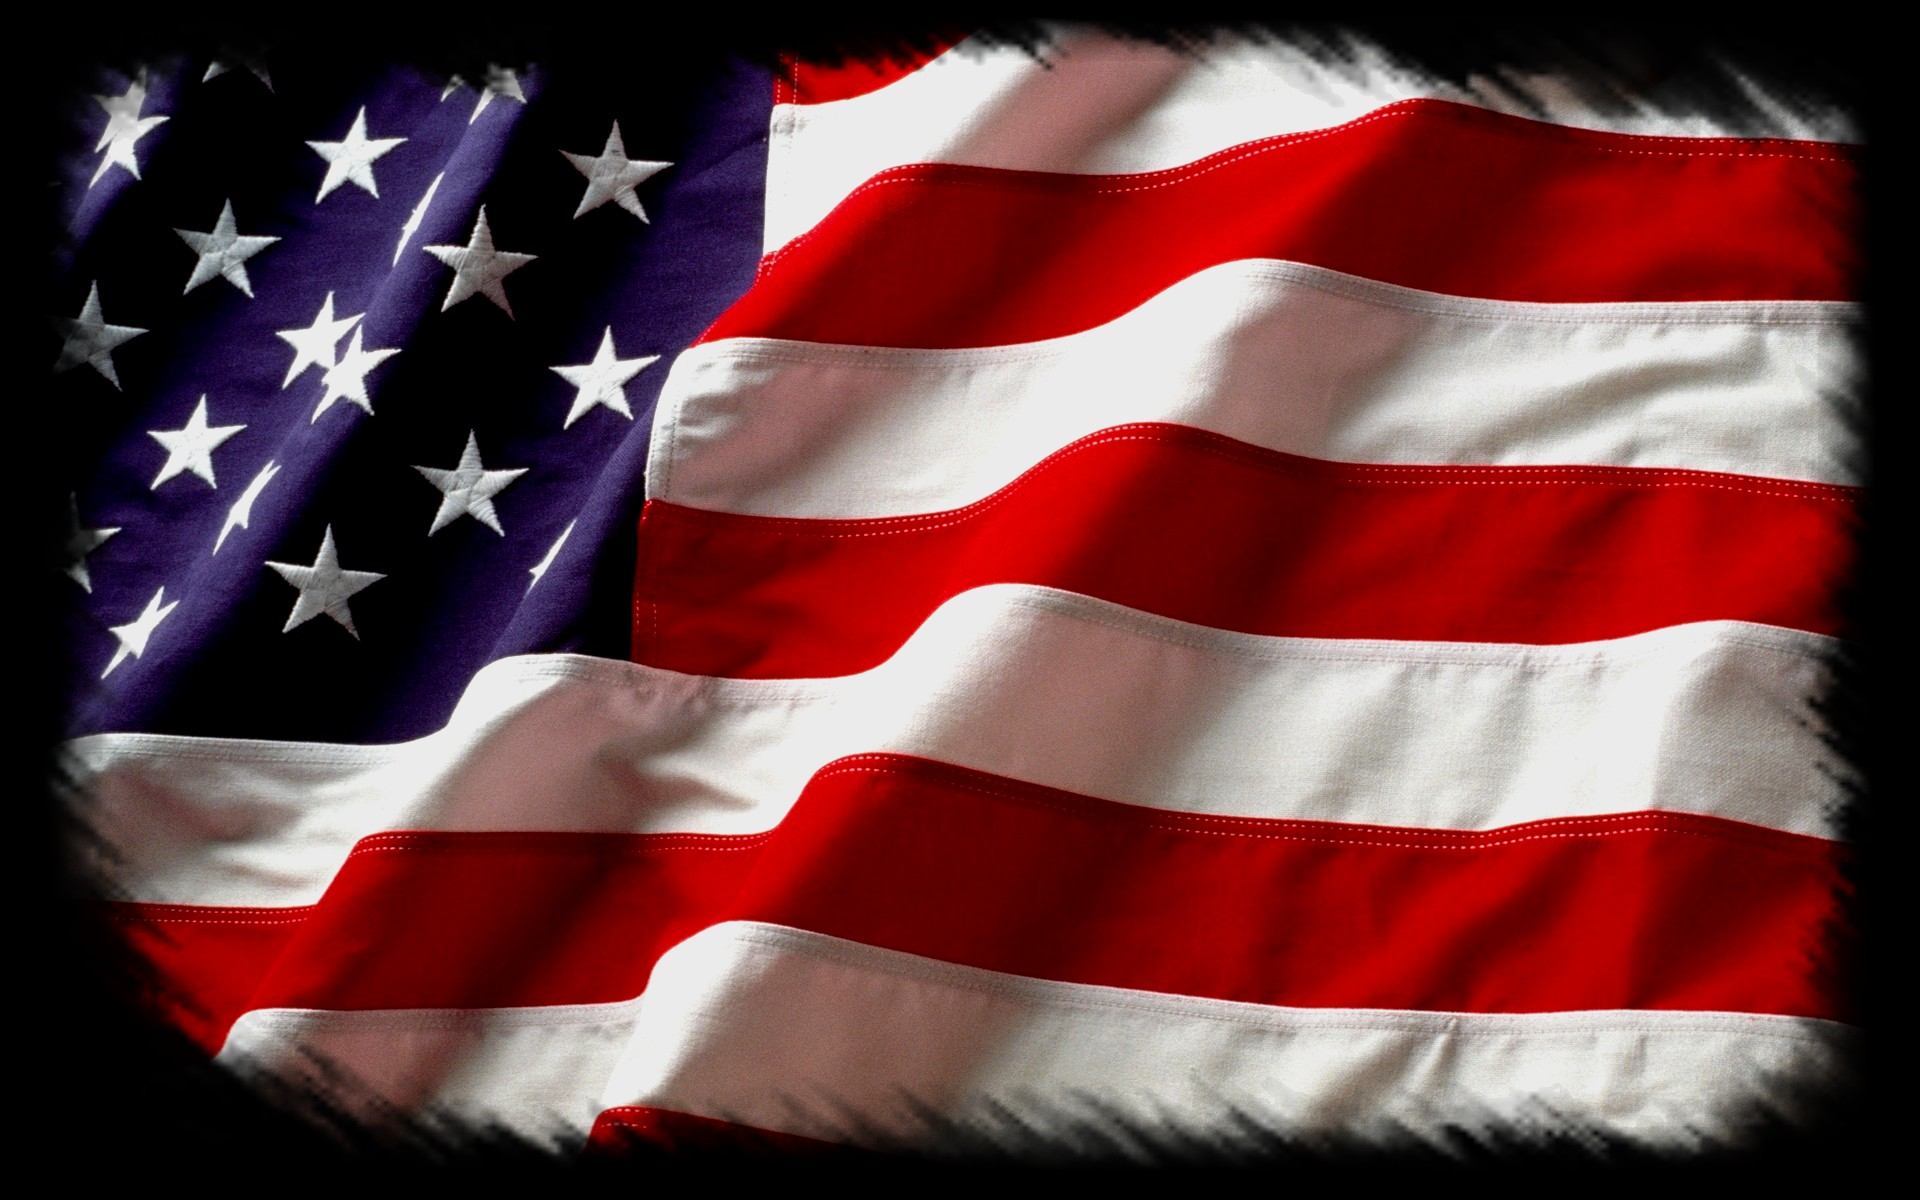 Hd wallpaper usa - Man Made American Flag Wallpaper